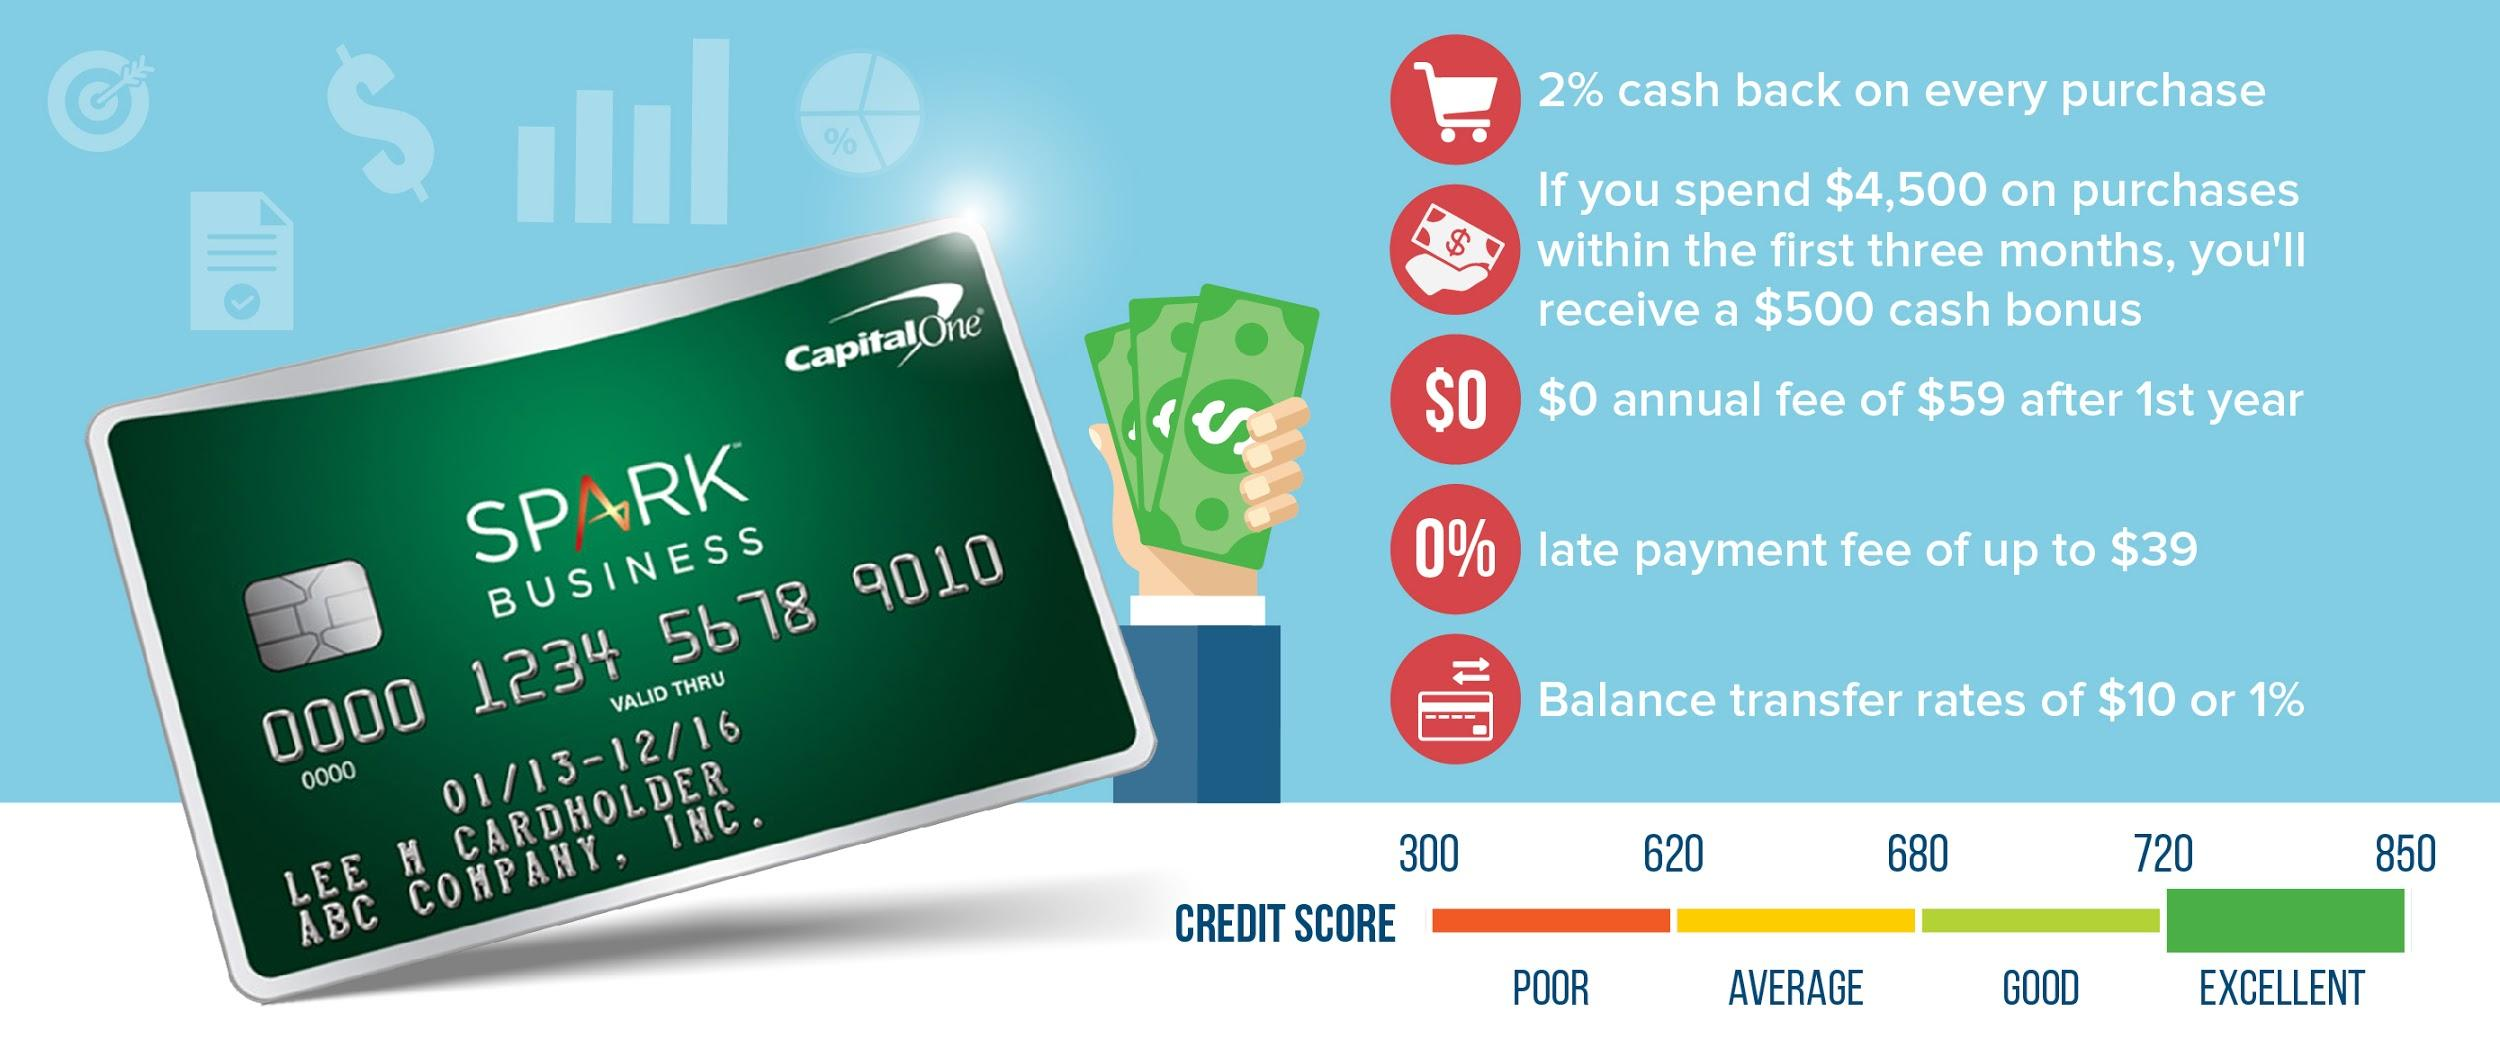 Capital one business card customer service best business for Capitalone business card